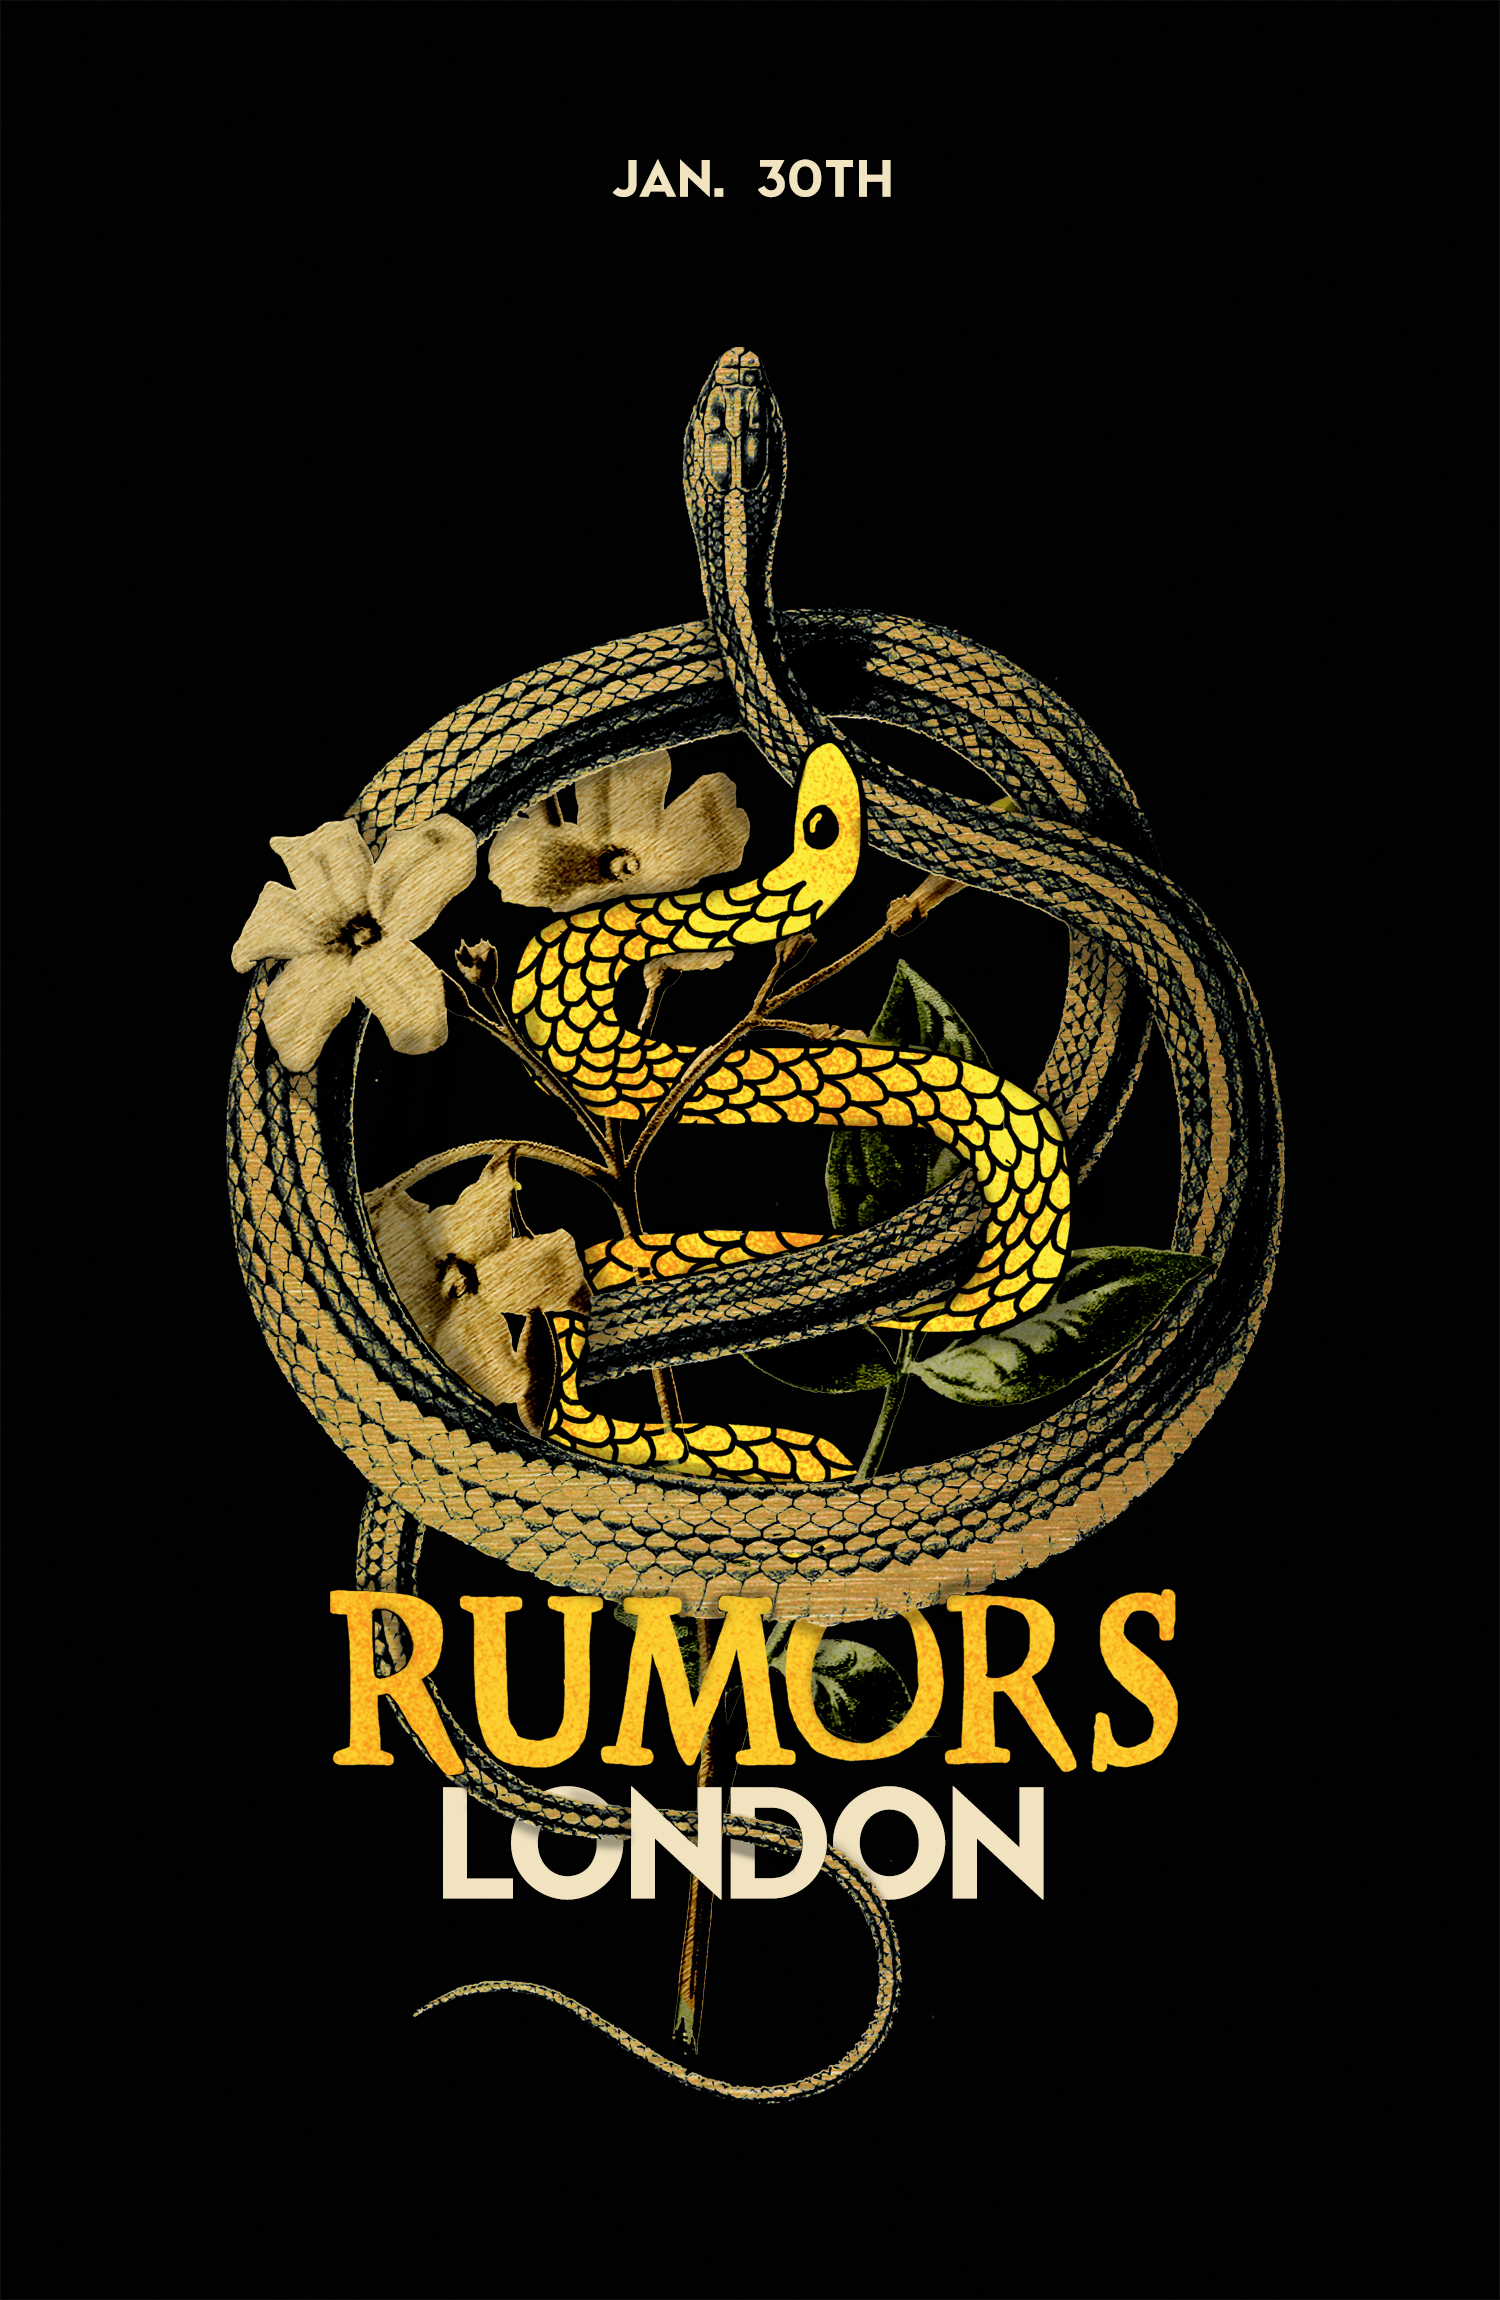 Rumors-LONDON-11x17.jpg